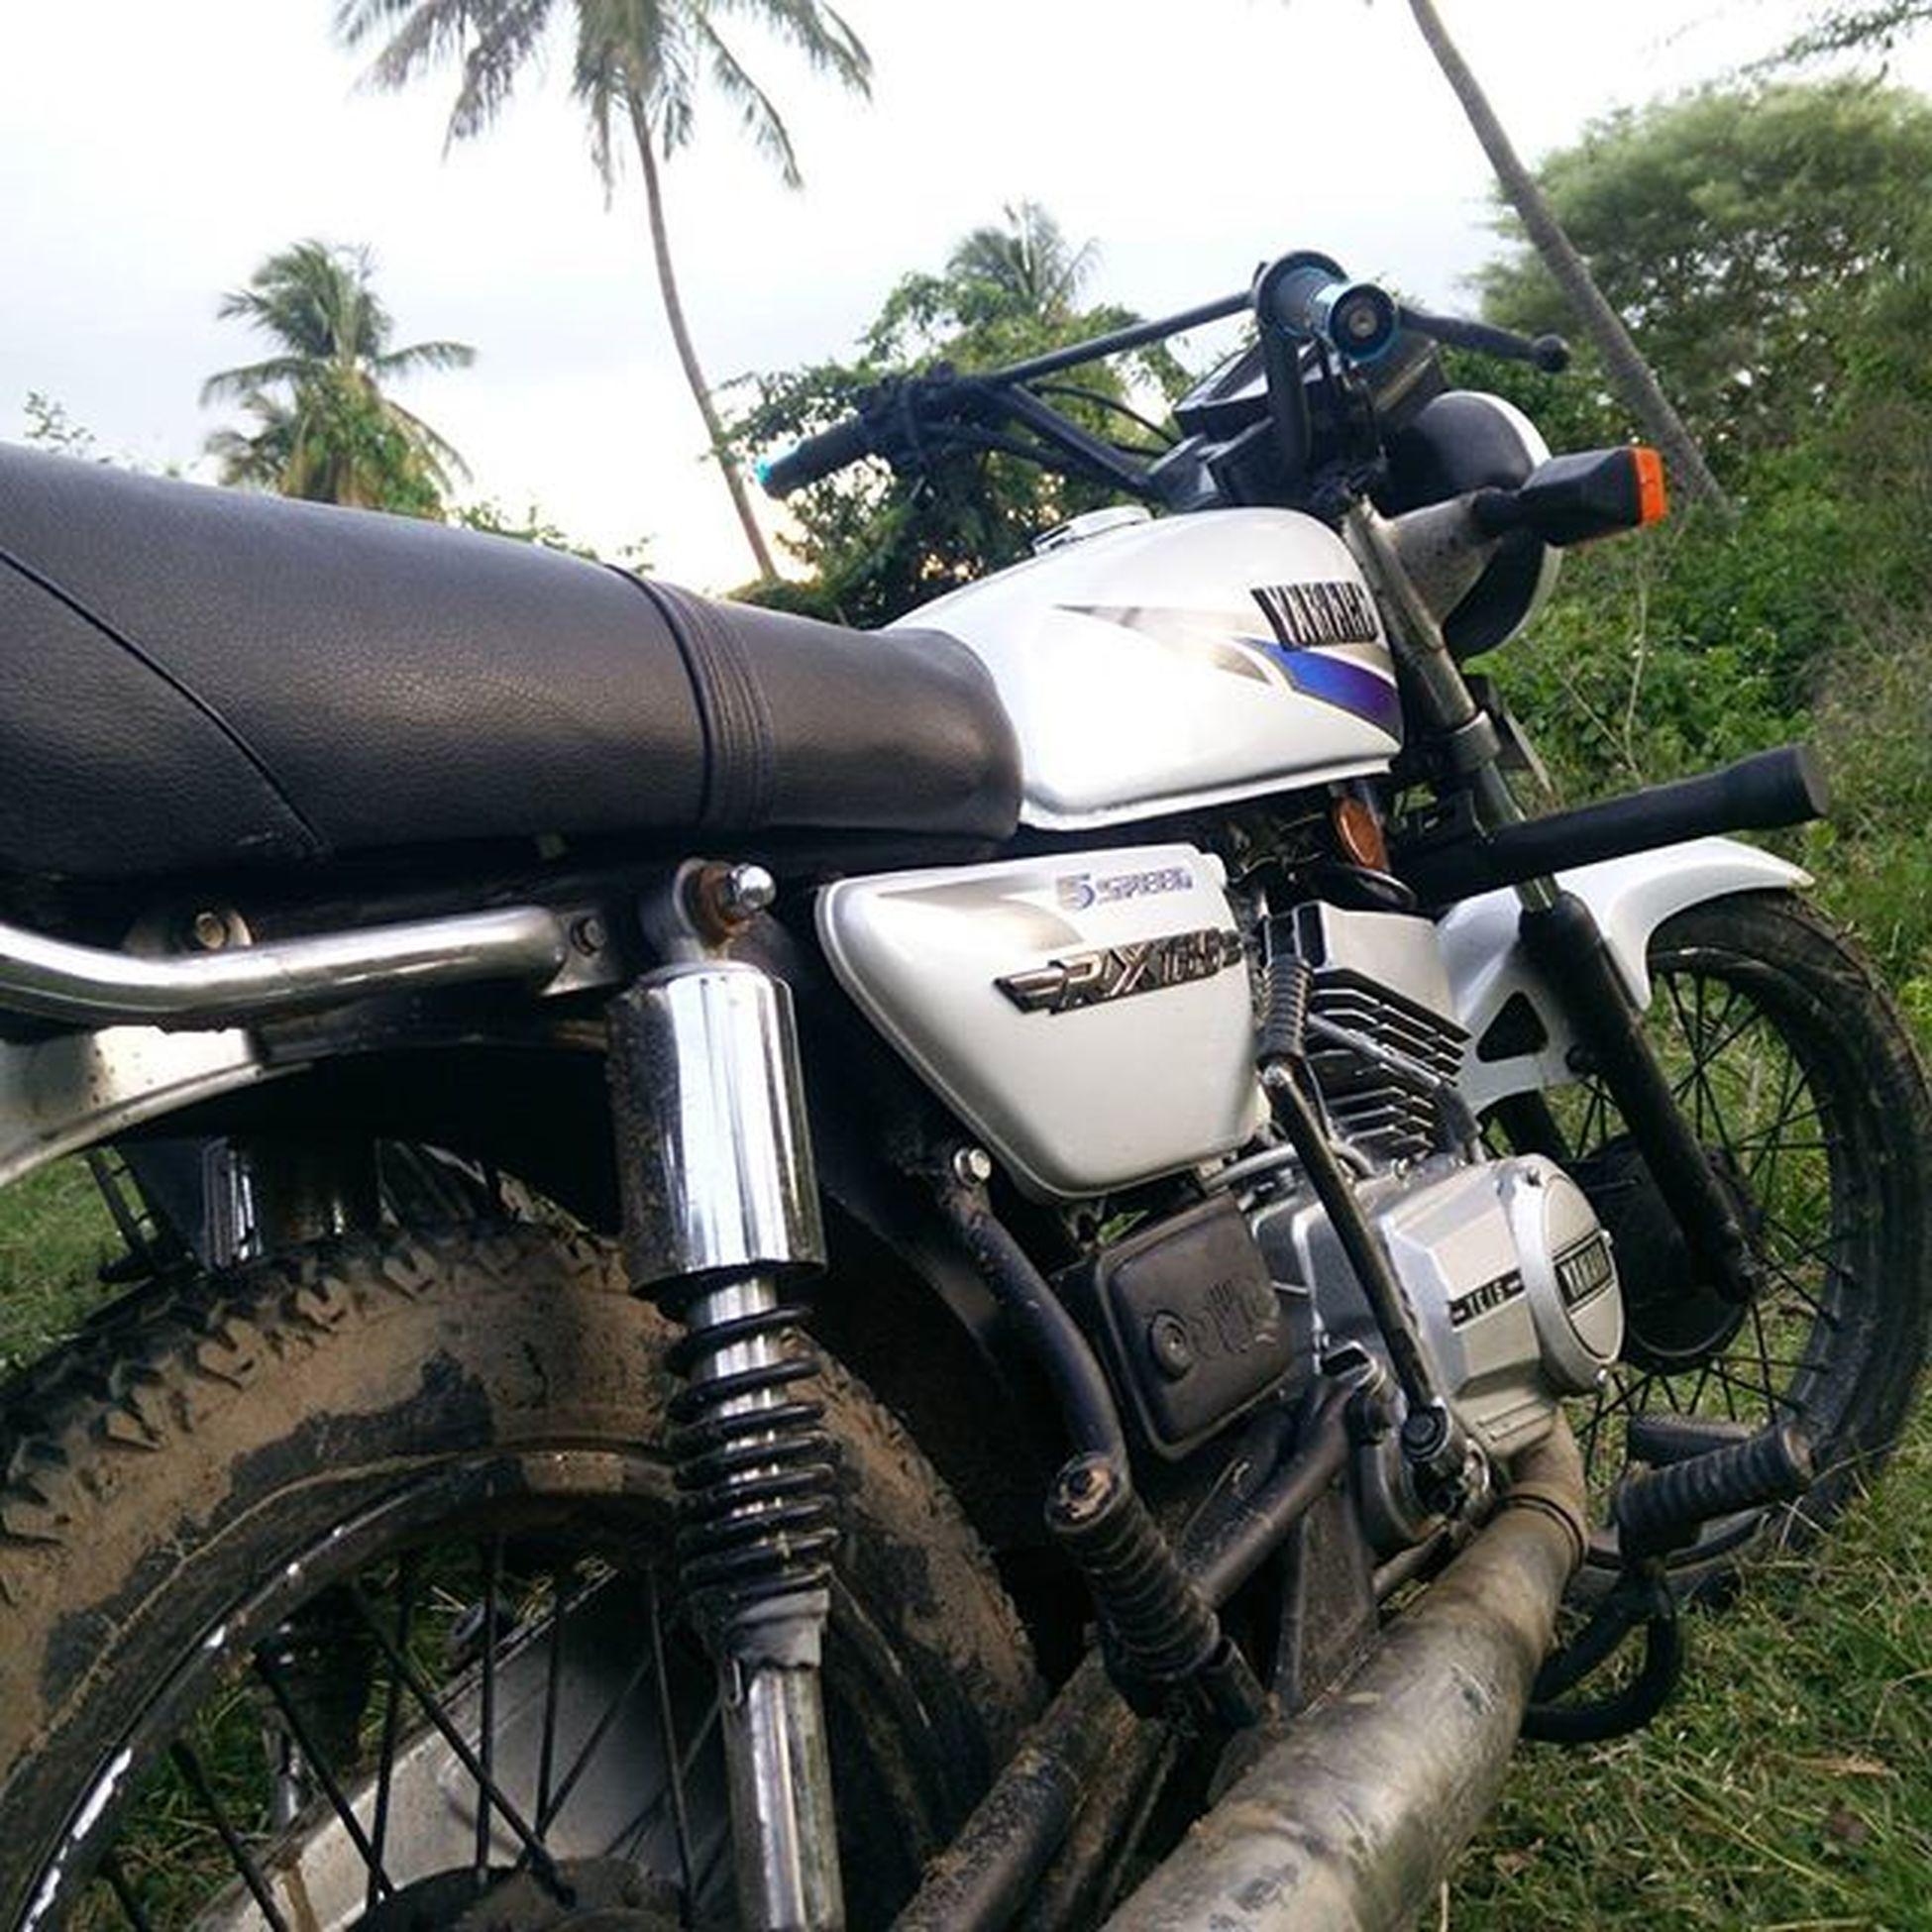 Almost thr the Beastunleashed Save2stroke Yamaharxking Yamaharx135 Port Chamber Catalytic Dirtforlife Vintagewins Allaboutthemuscle😉😉😉